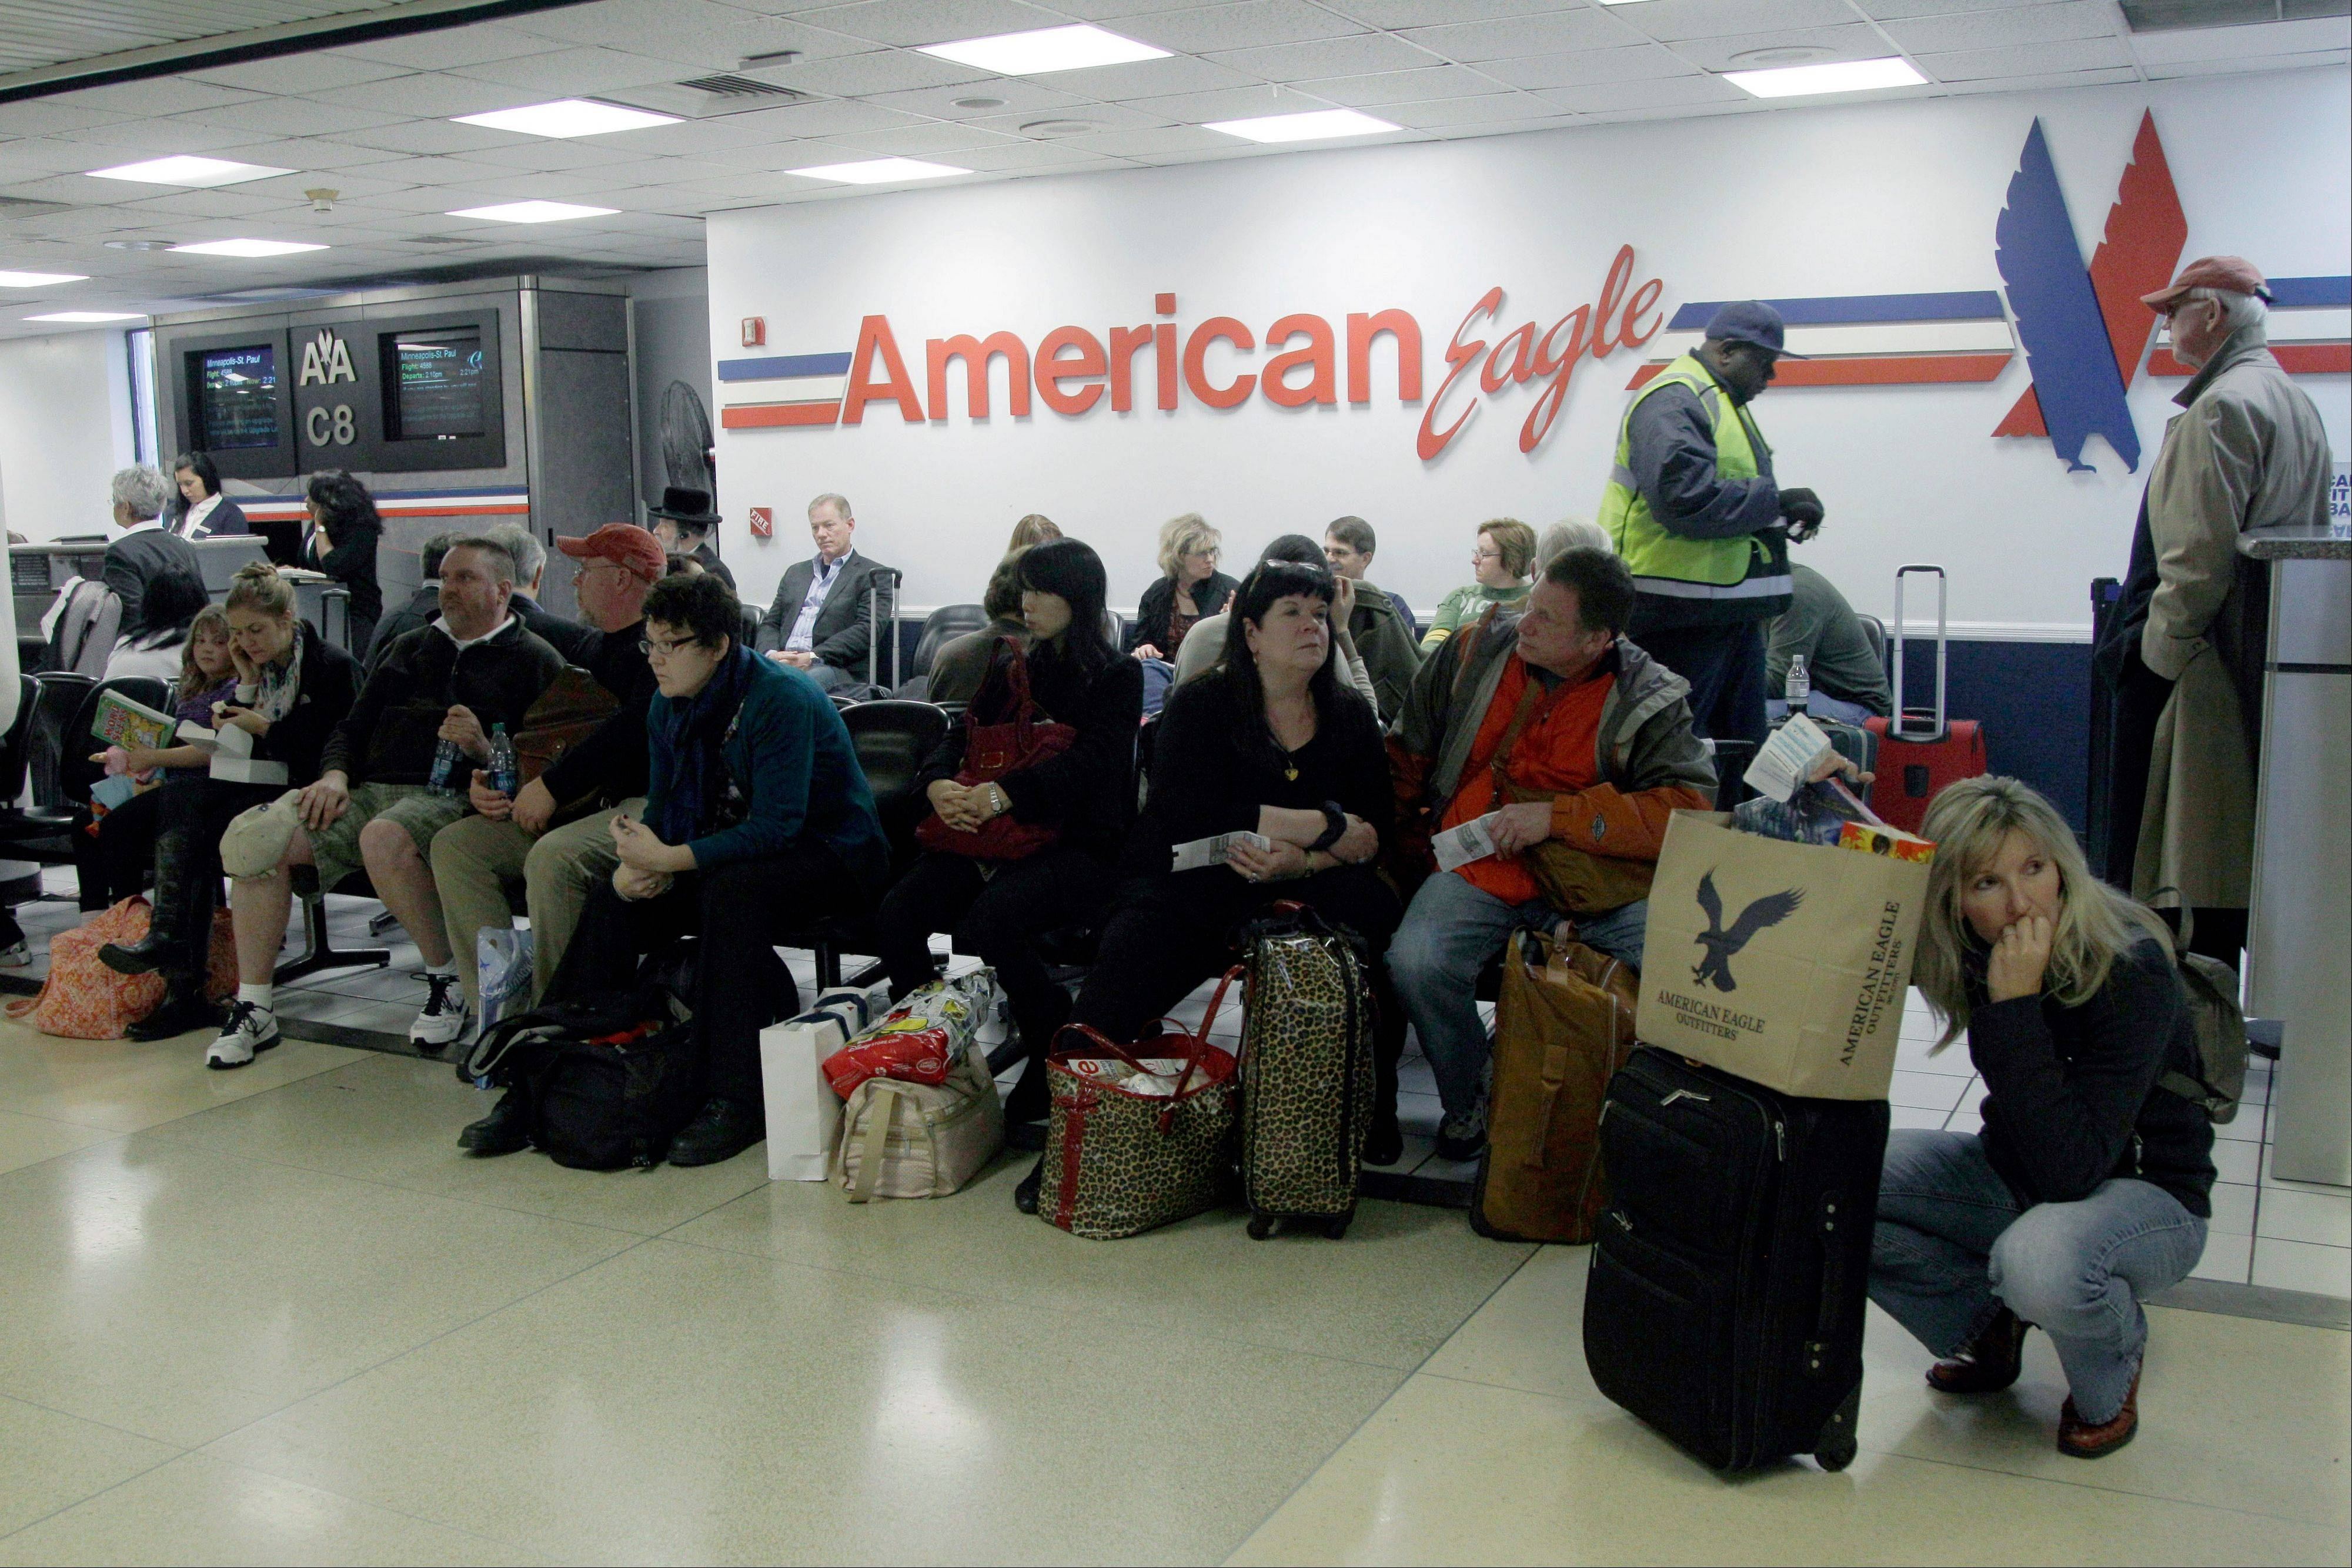 Passengers wait for their flight at LaGuardia airport in New York Sunday. Hurricane Sandy grounded thousands of flights in the U.S. northeast Monday.